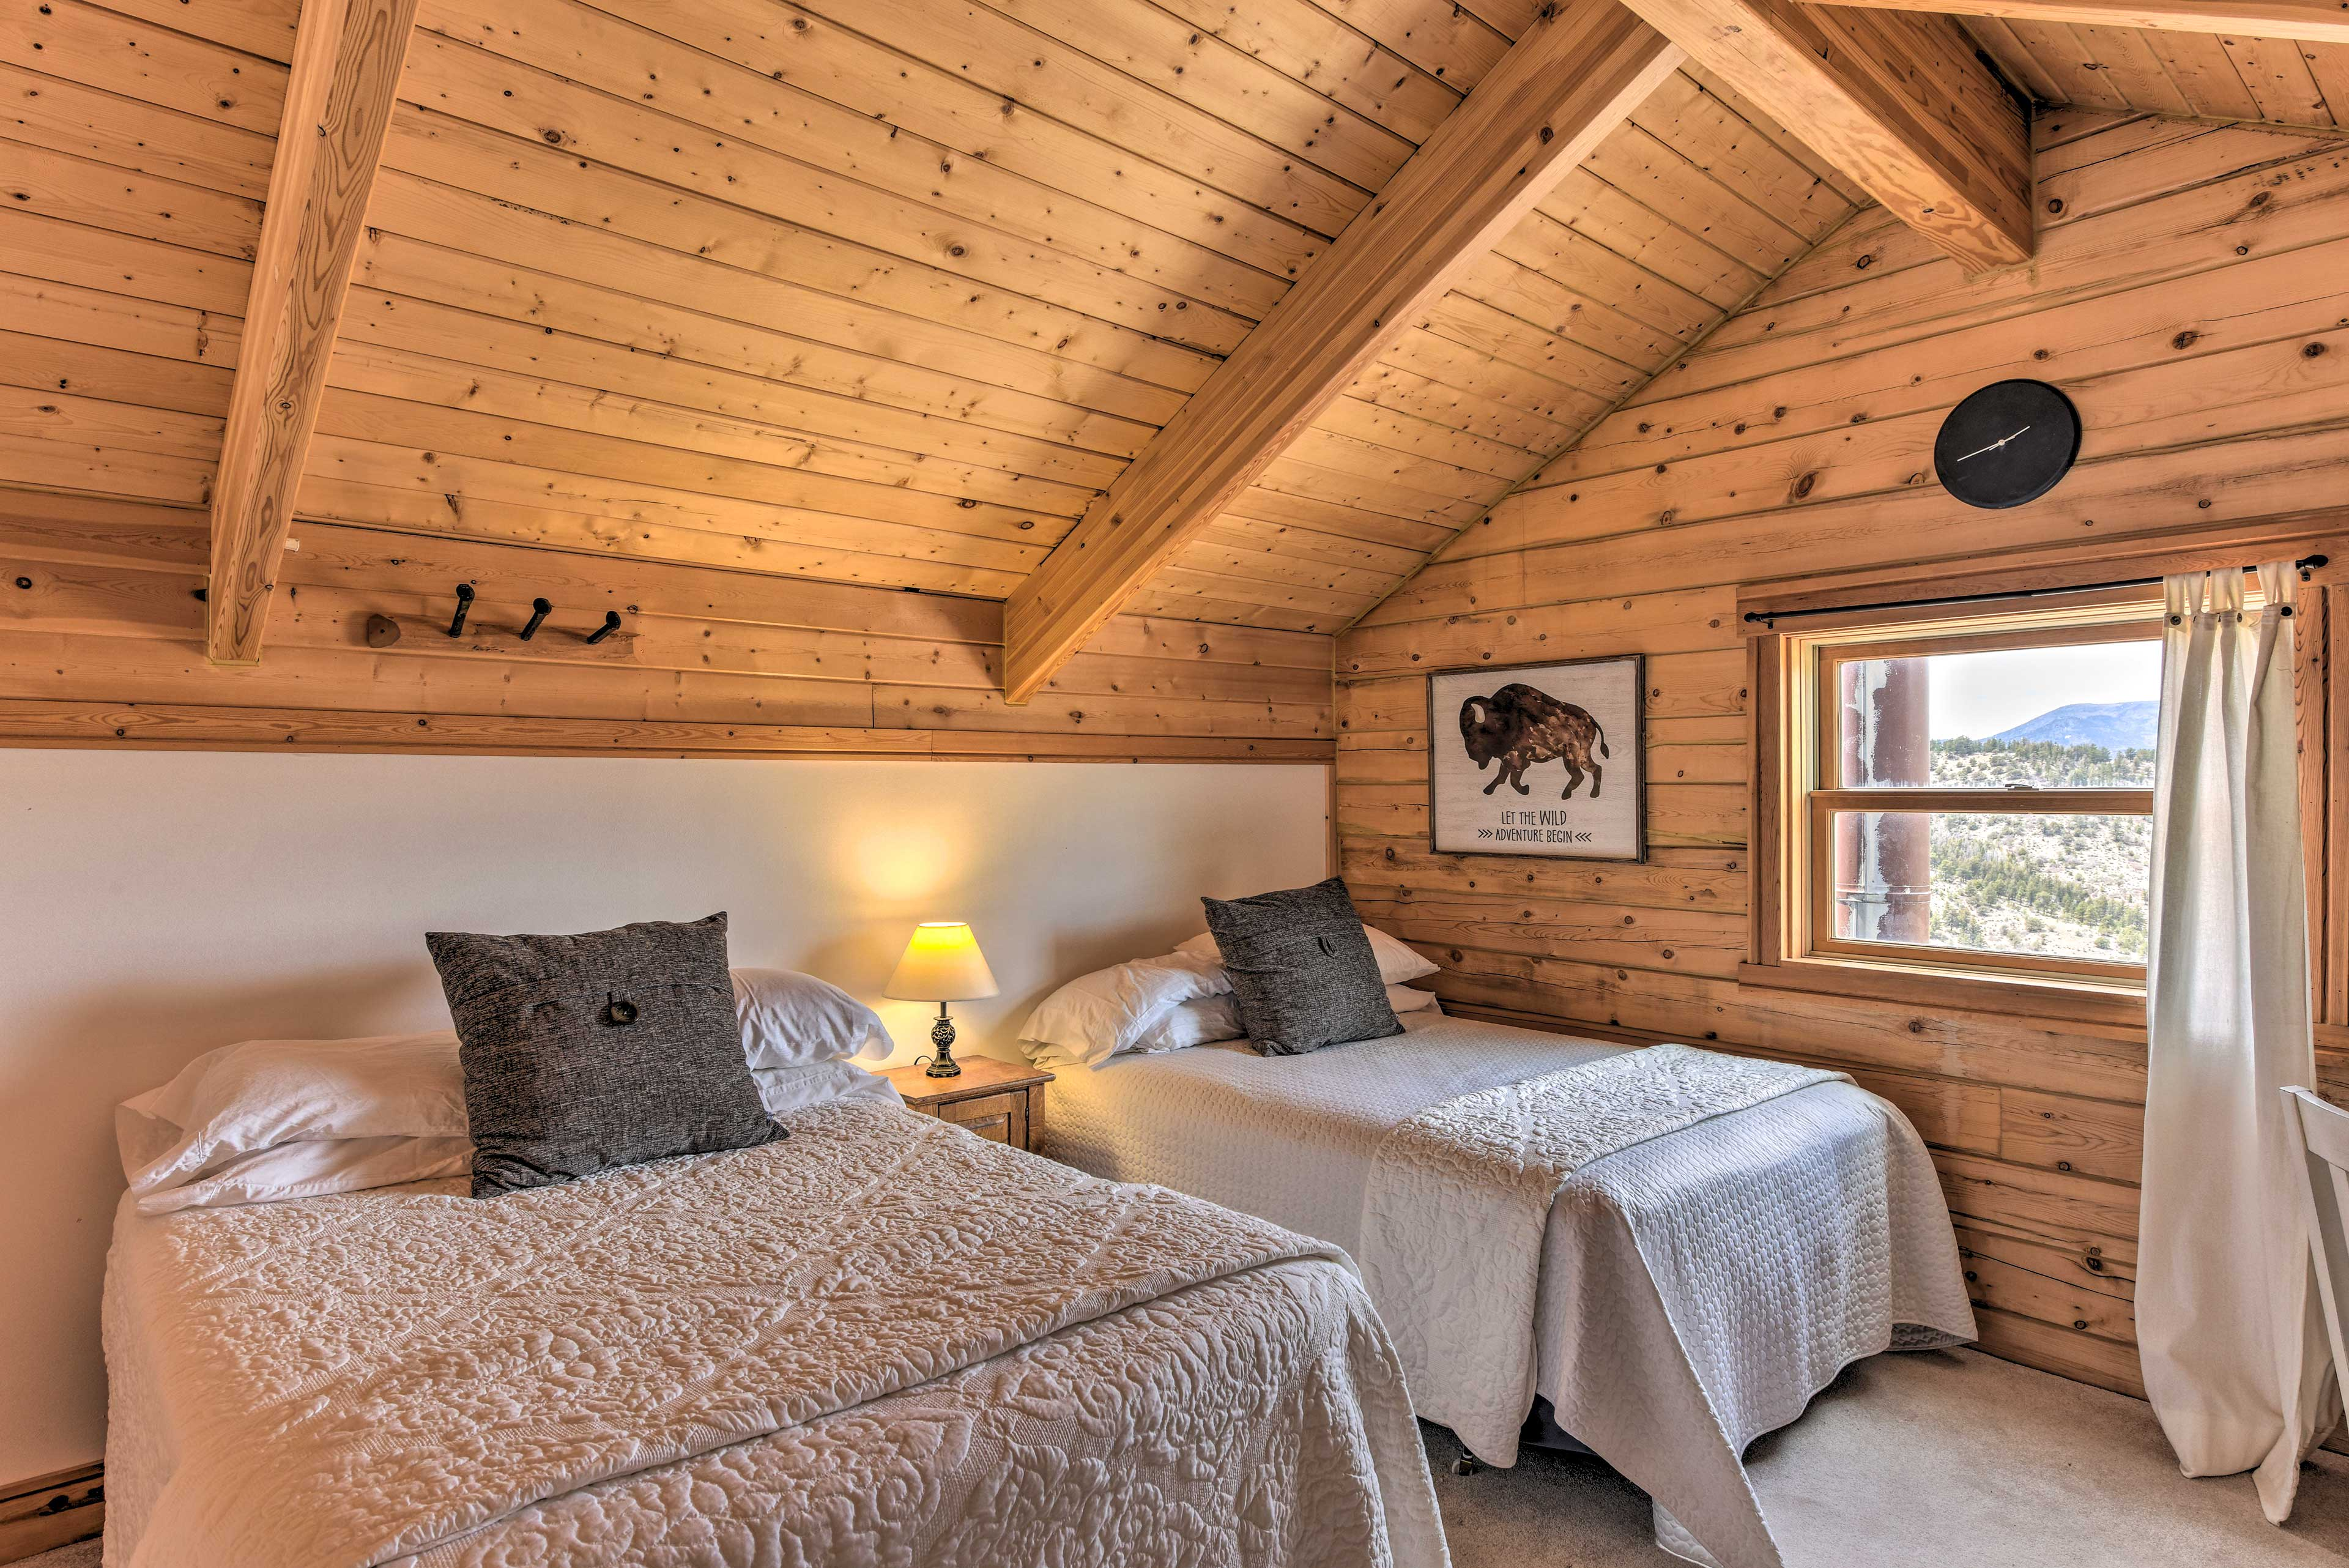 The loft features 2 full beds.